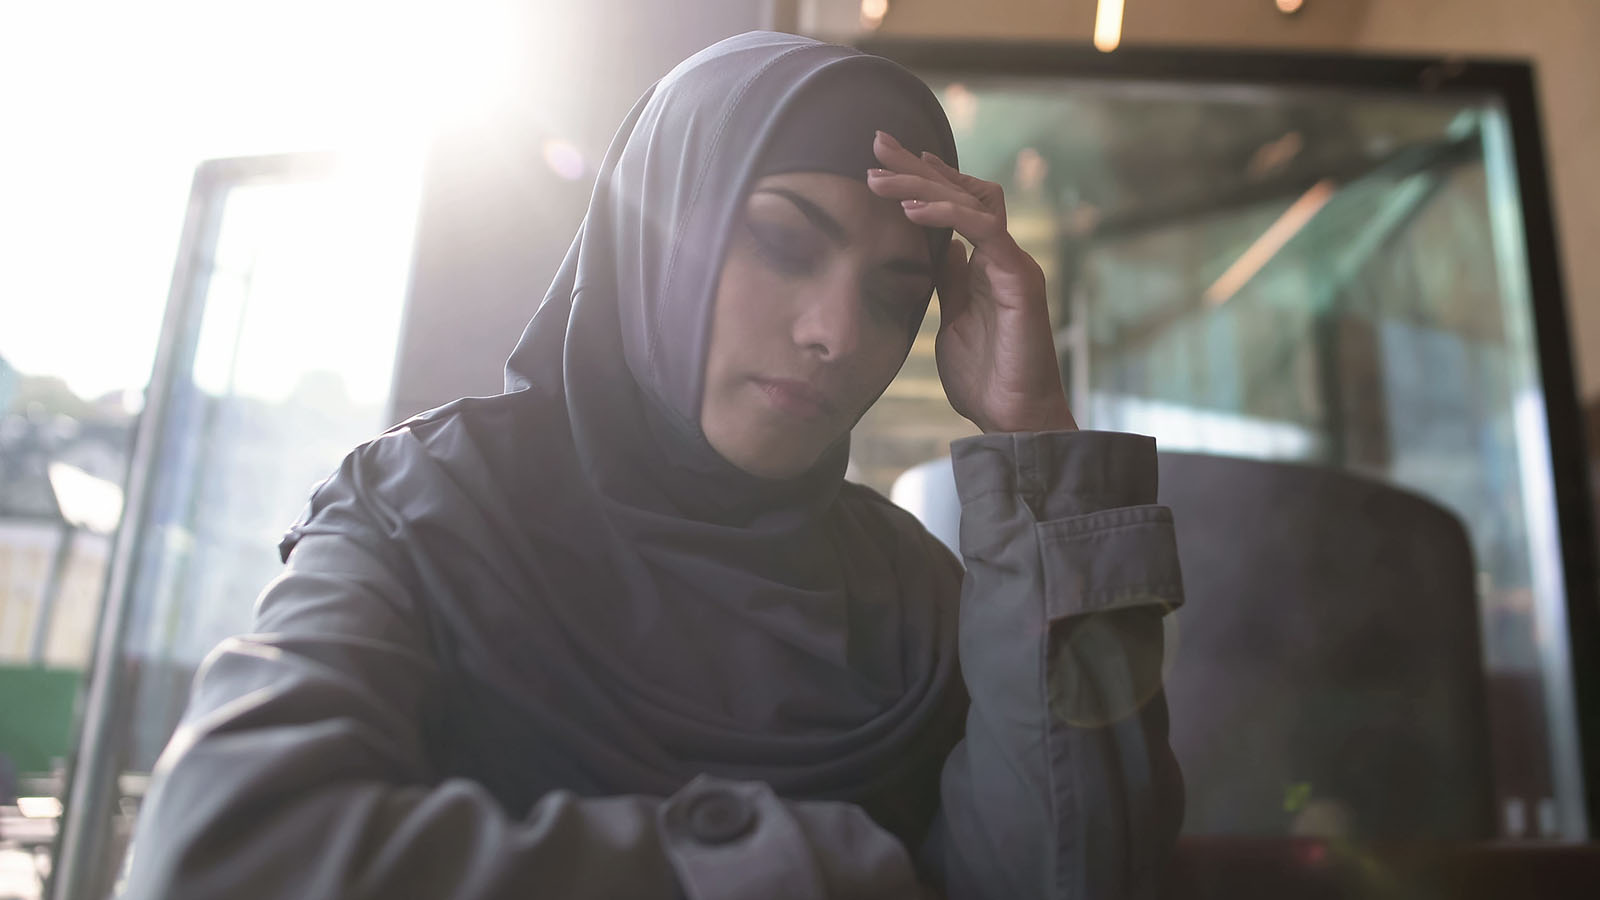 A woman wearing a hijab looks pensive while holding her temple and closing her eyes.